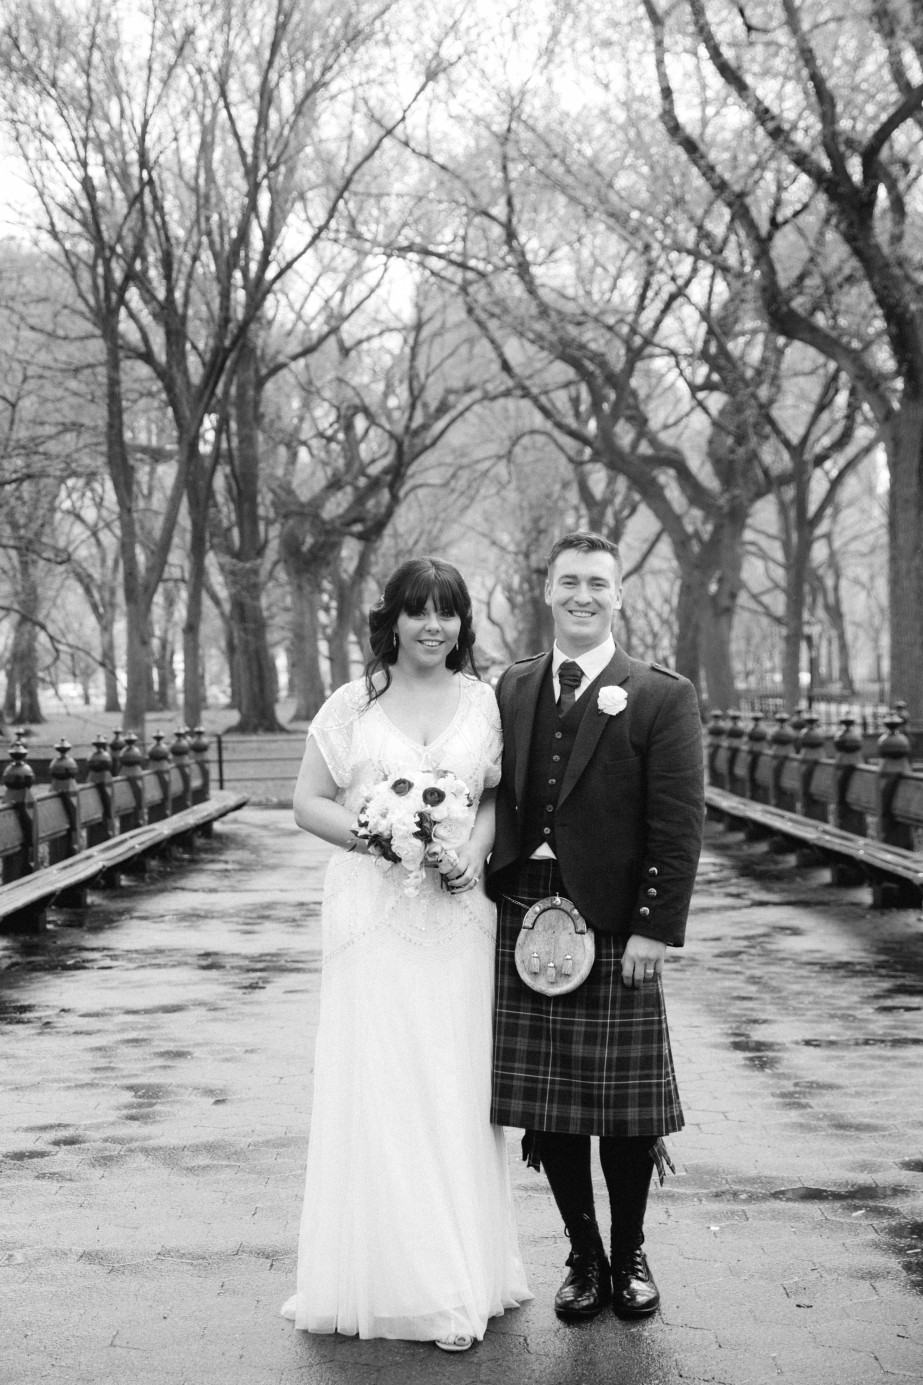 Conservatory-garden-central-park-wedding_RD-169